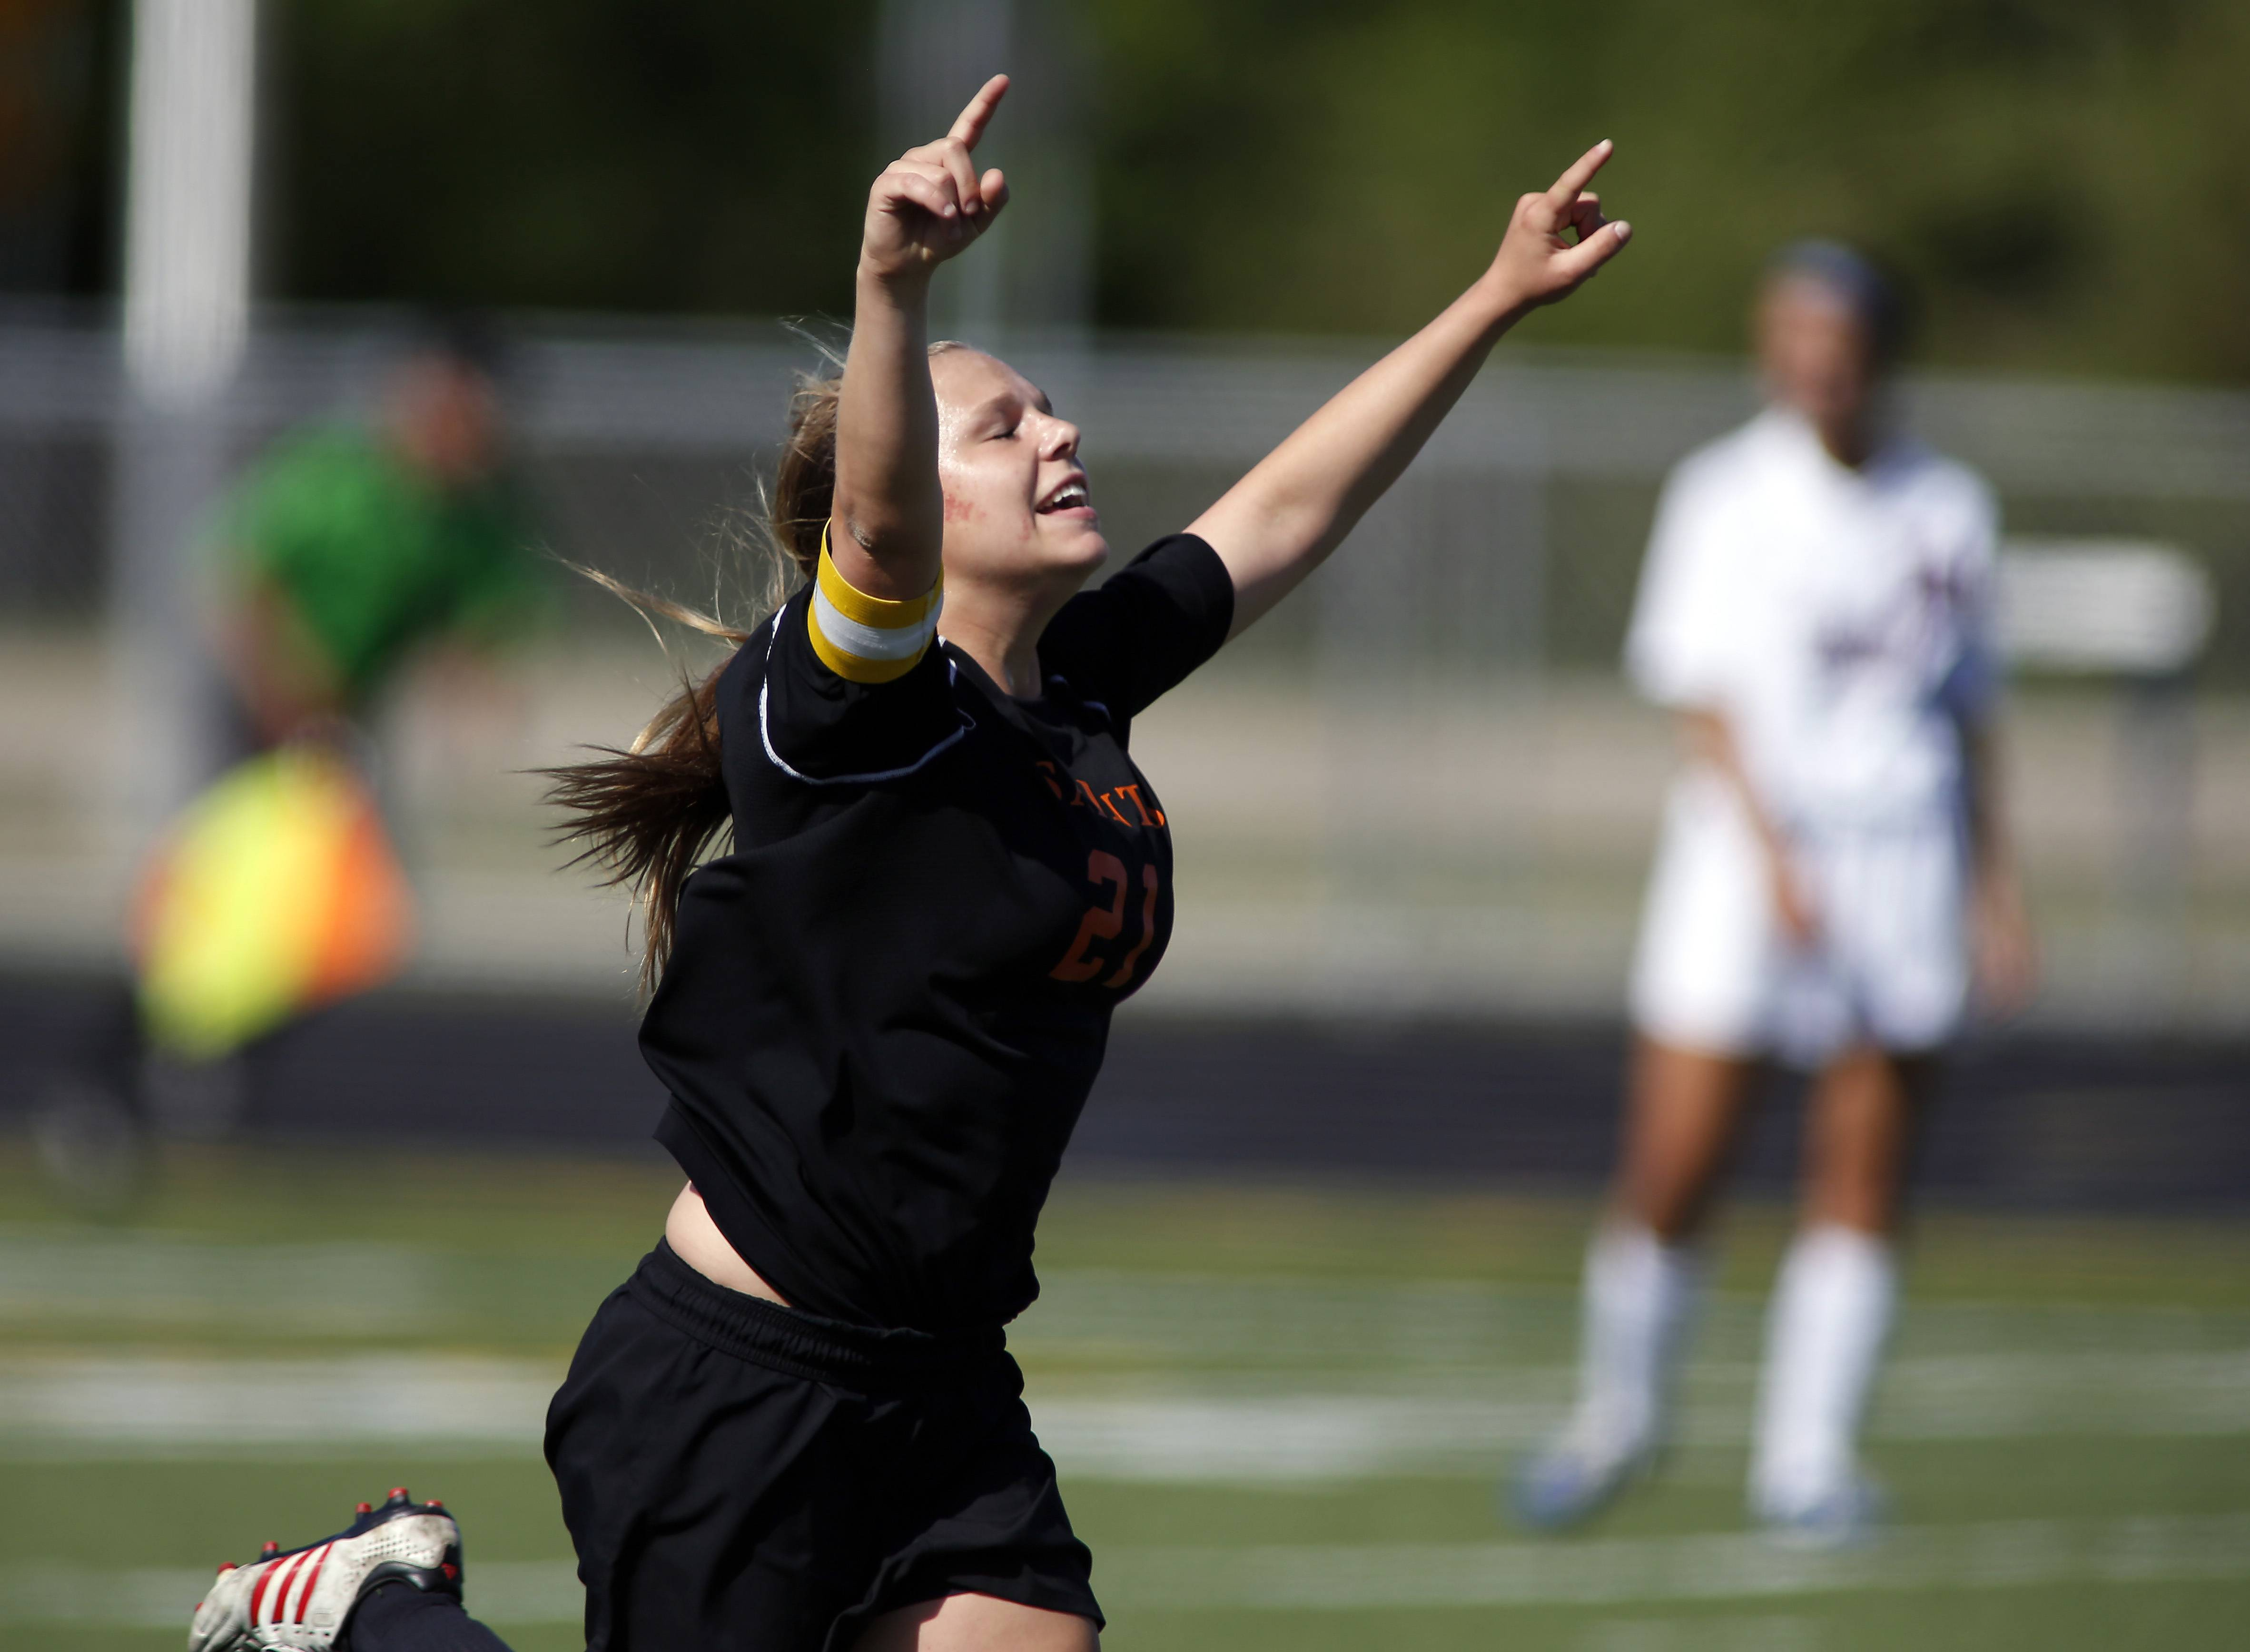 St Charles East's Amanda Hilton celebrates after her first half goal during St. Charles East vs. Conant girls soccer sectional title game Friday.